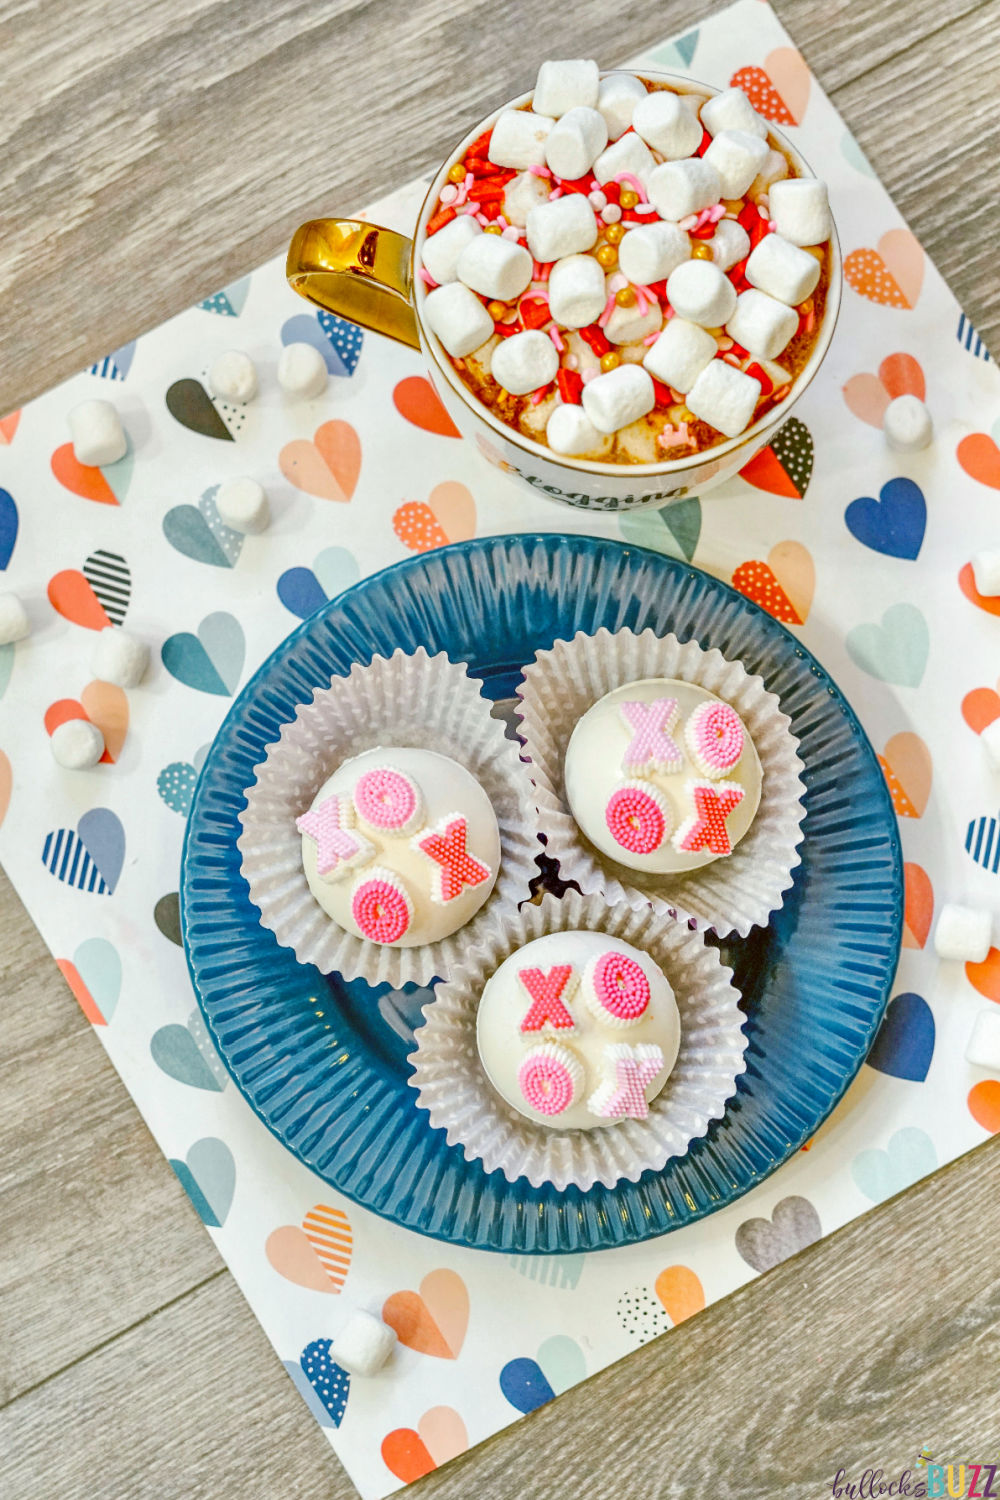 Homemade white chocolate spheres are filled with hot cocoa mix, sprinkles, and mini marshmallows, then decorated with XOXO candies for a delicious hot cocoa drink you will love! These XOXO Valentine's hot cocoa bombs are, well, the bomb!